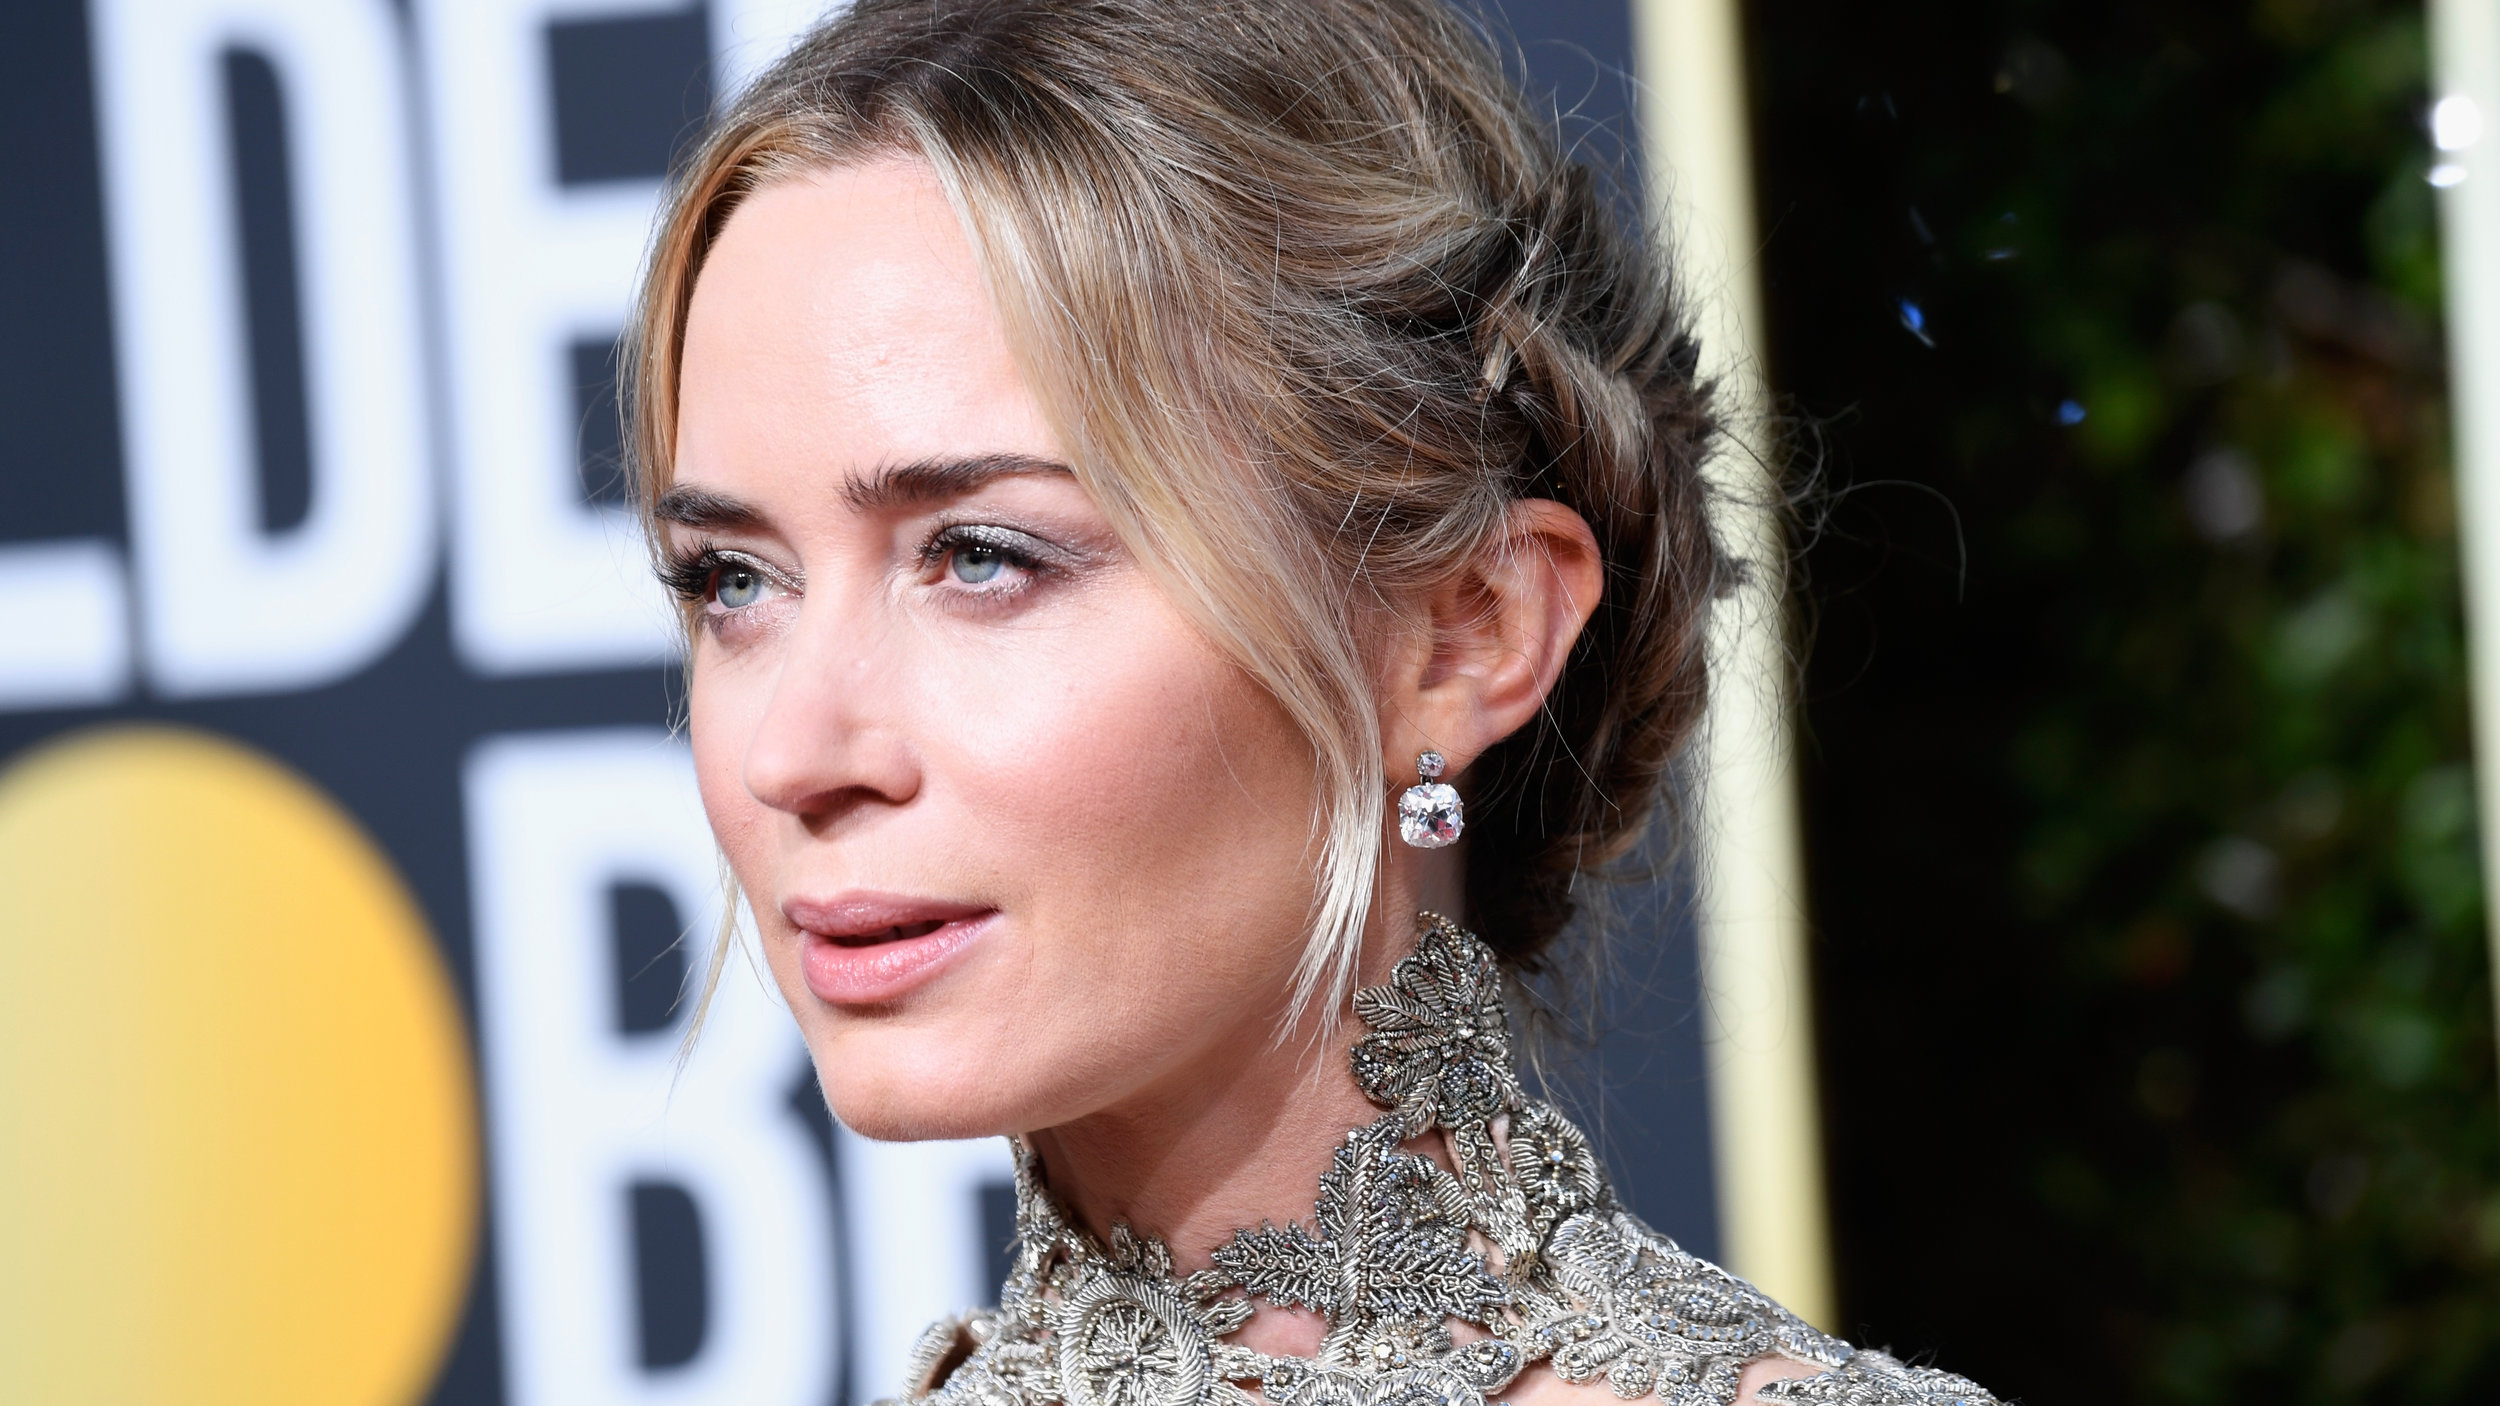 Style Caster: Emily Blunt at the 2019 Golden Globes • January 6, 2019